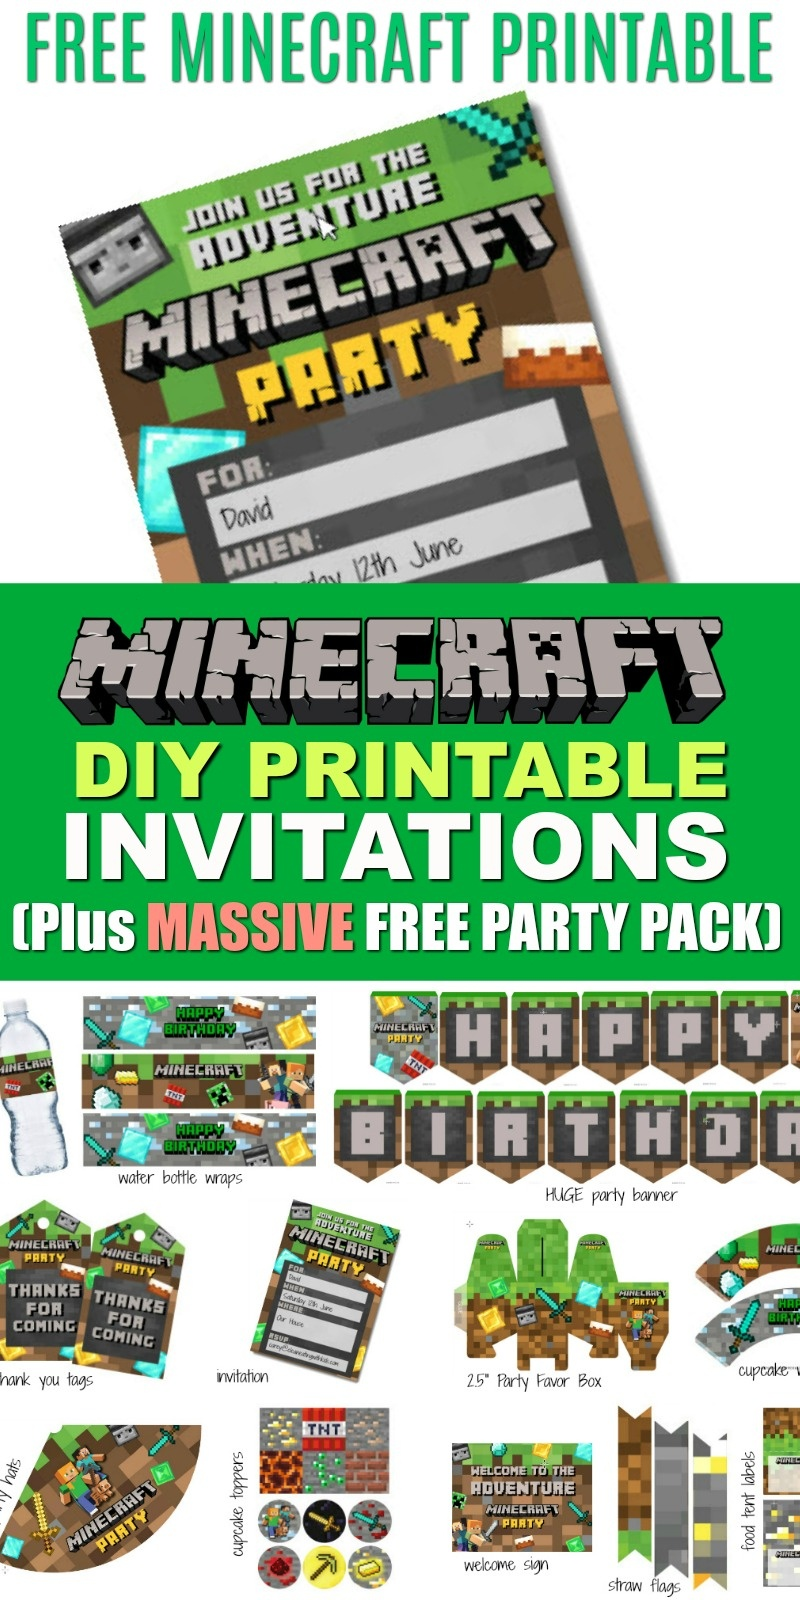 Free Diy Printable Minecraft Birthday Invitation - Clean Eating With - Free Minecraft Party Printables